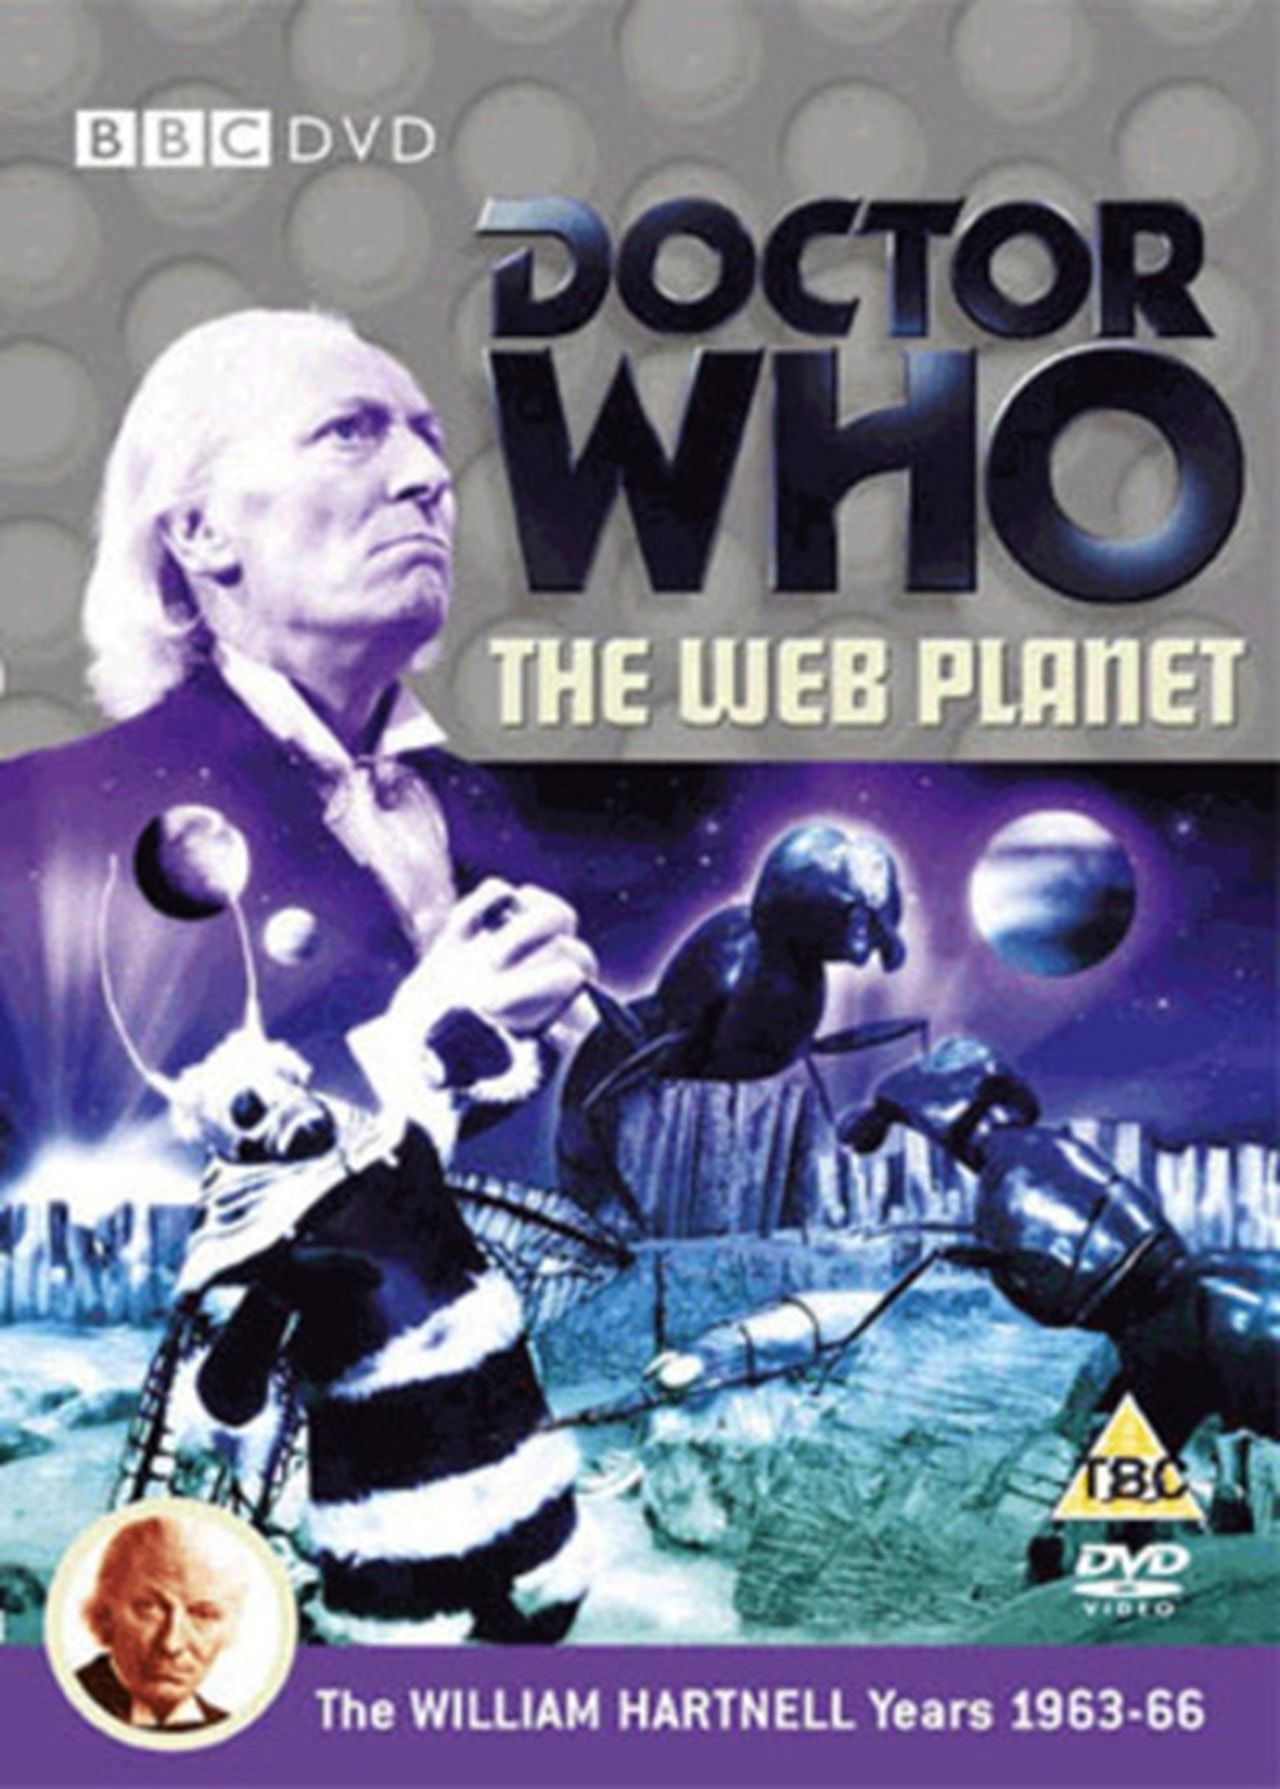 Doctor Who: The Web Planet - 1